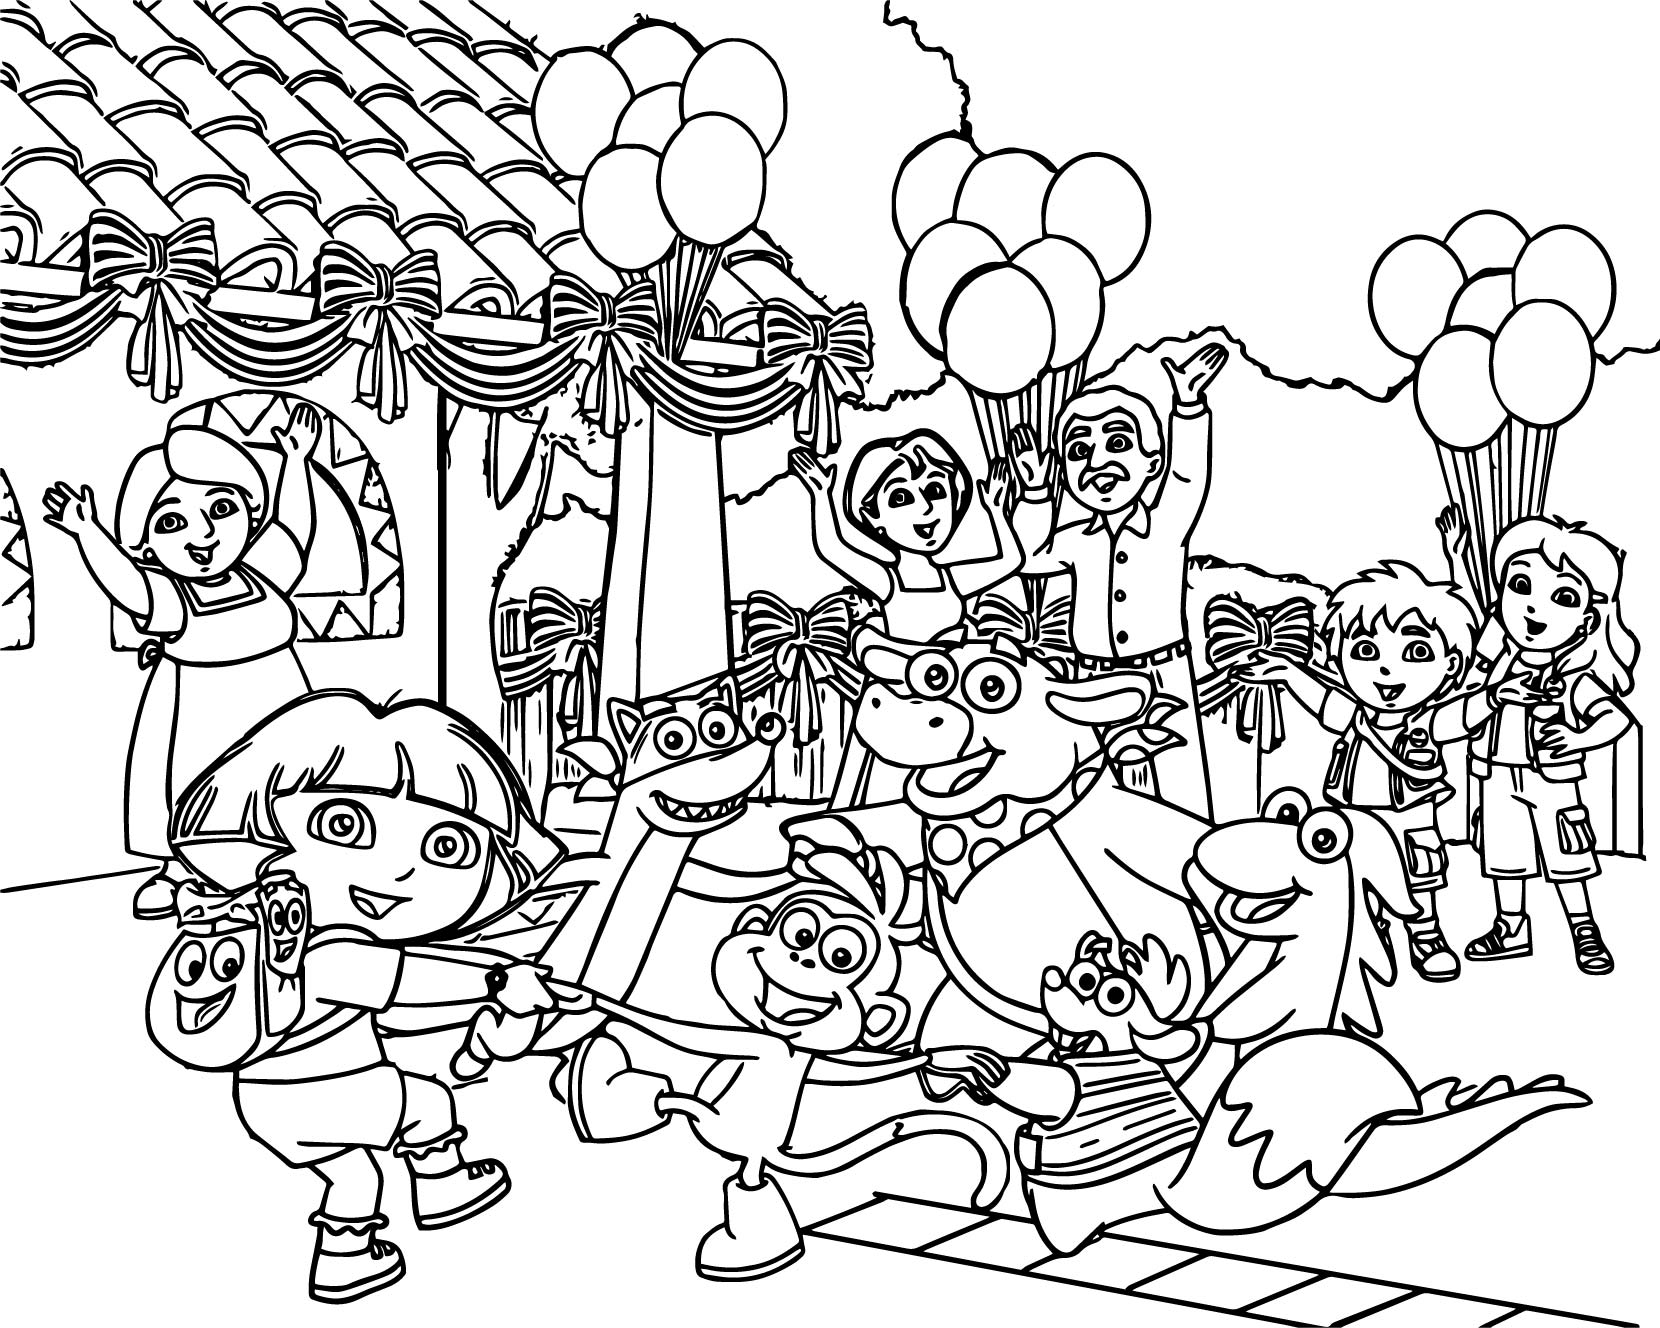 the dora the explorer party cartoon family coloring page